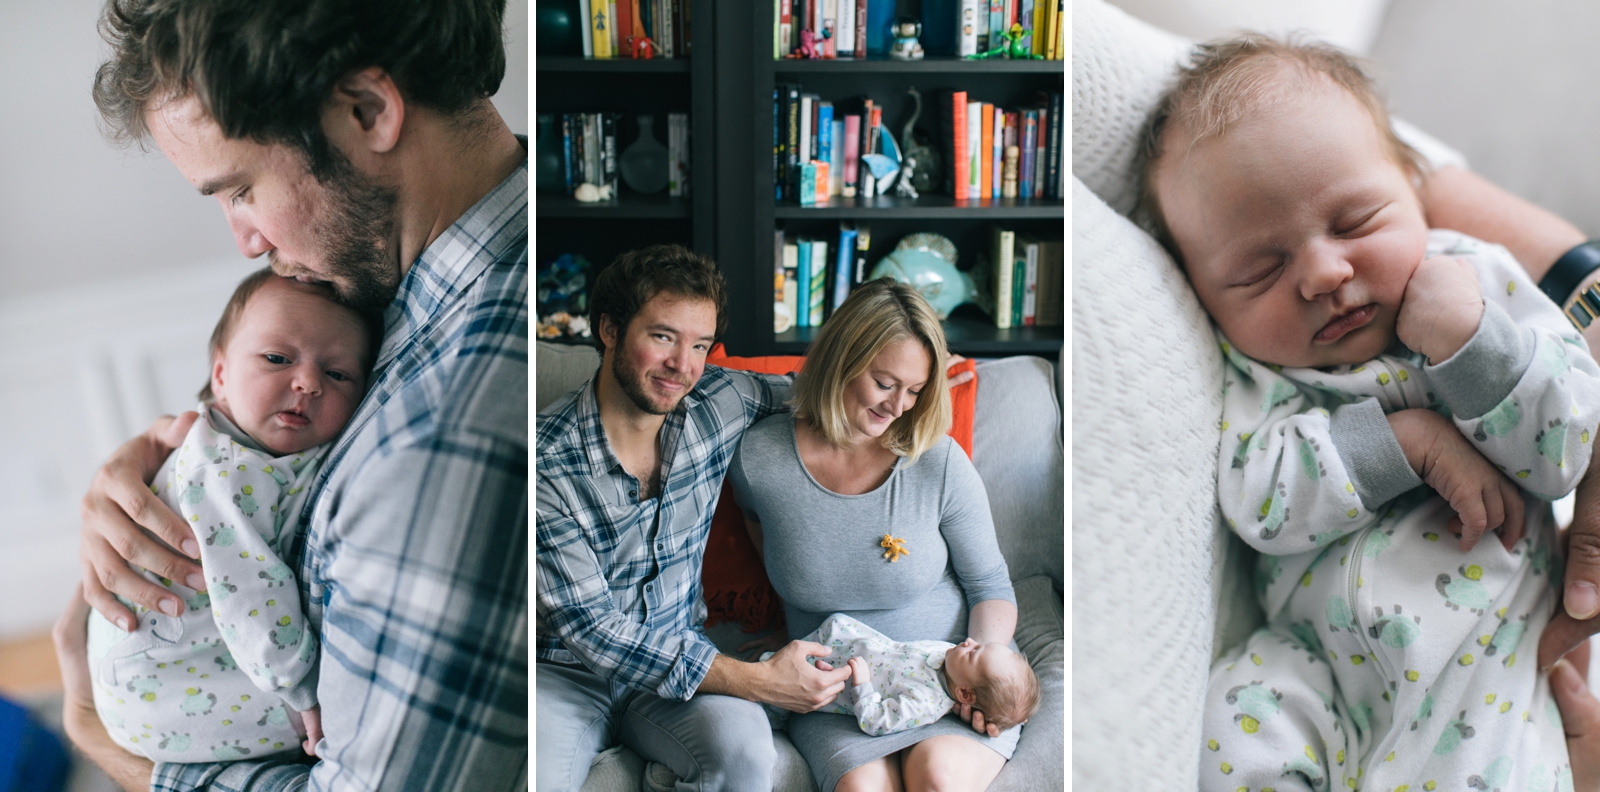 Intimate family portraits with newborn in their home with beautiful natural light from window